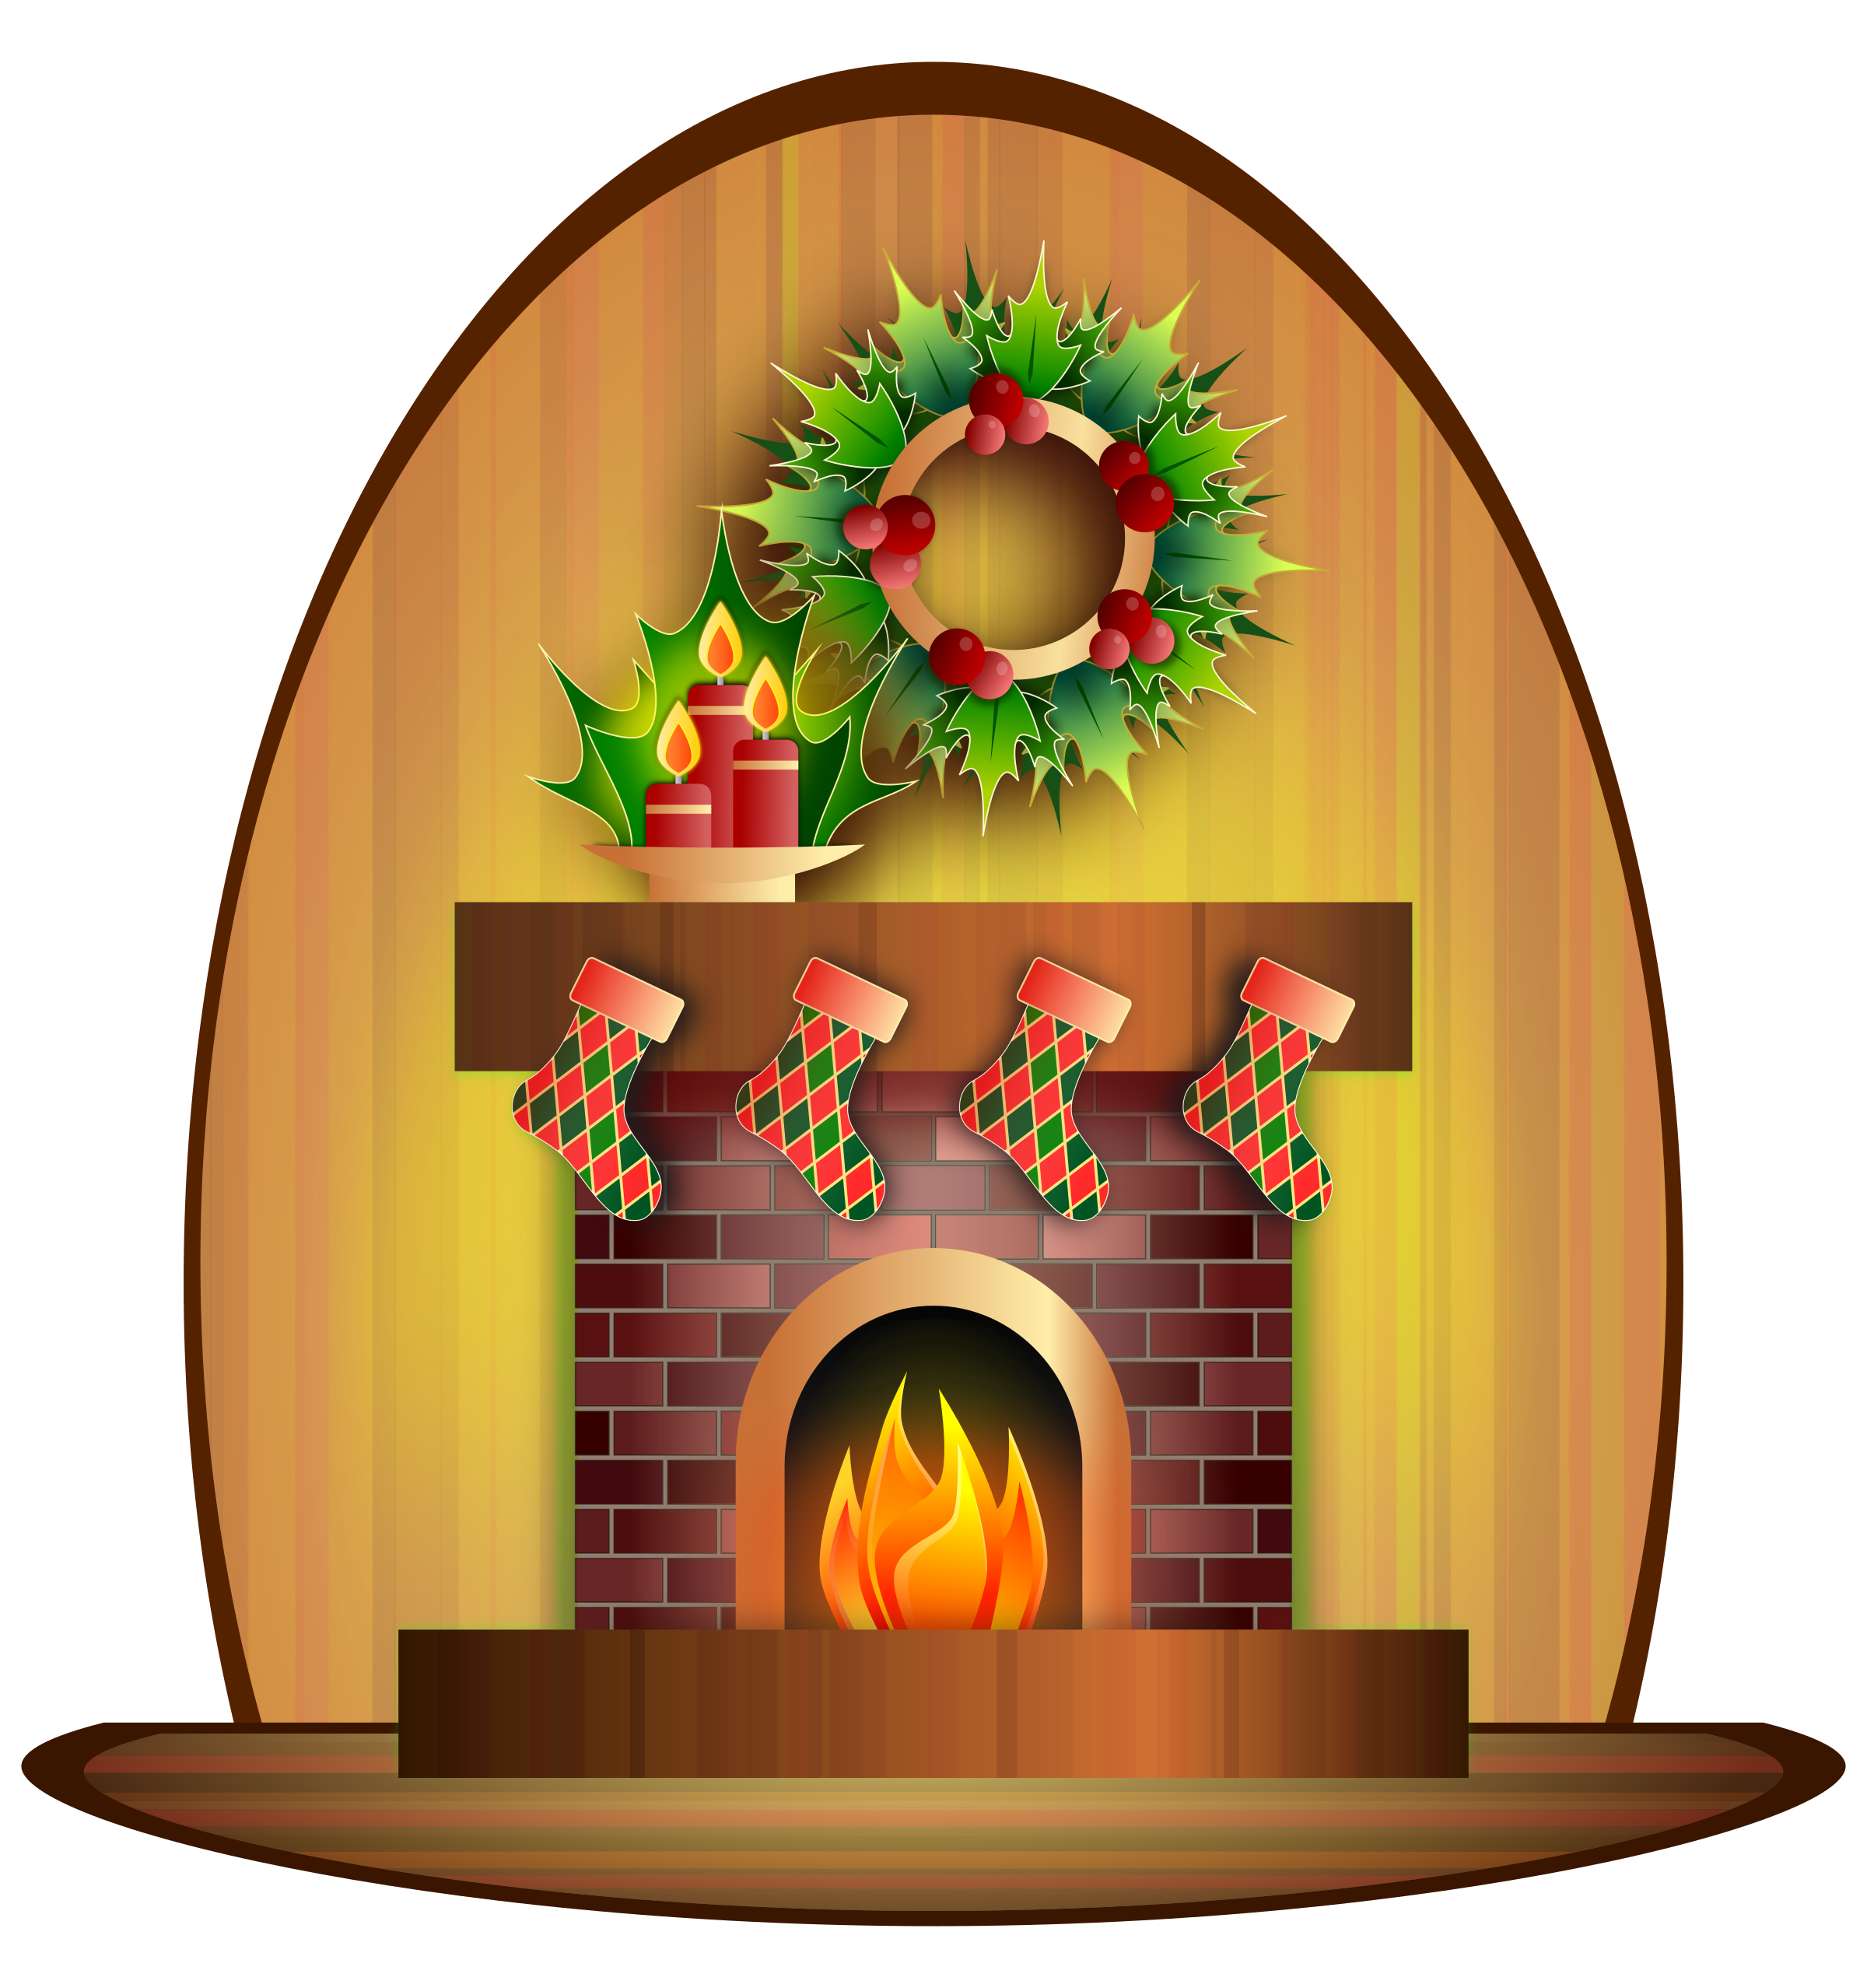 Fireplace clipart christmas fireplace scene Christmas Fireplace Clipart Christmas Fireplace